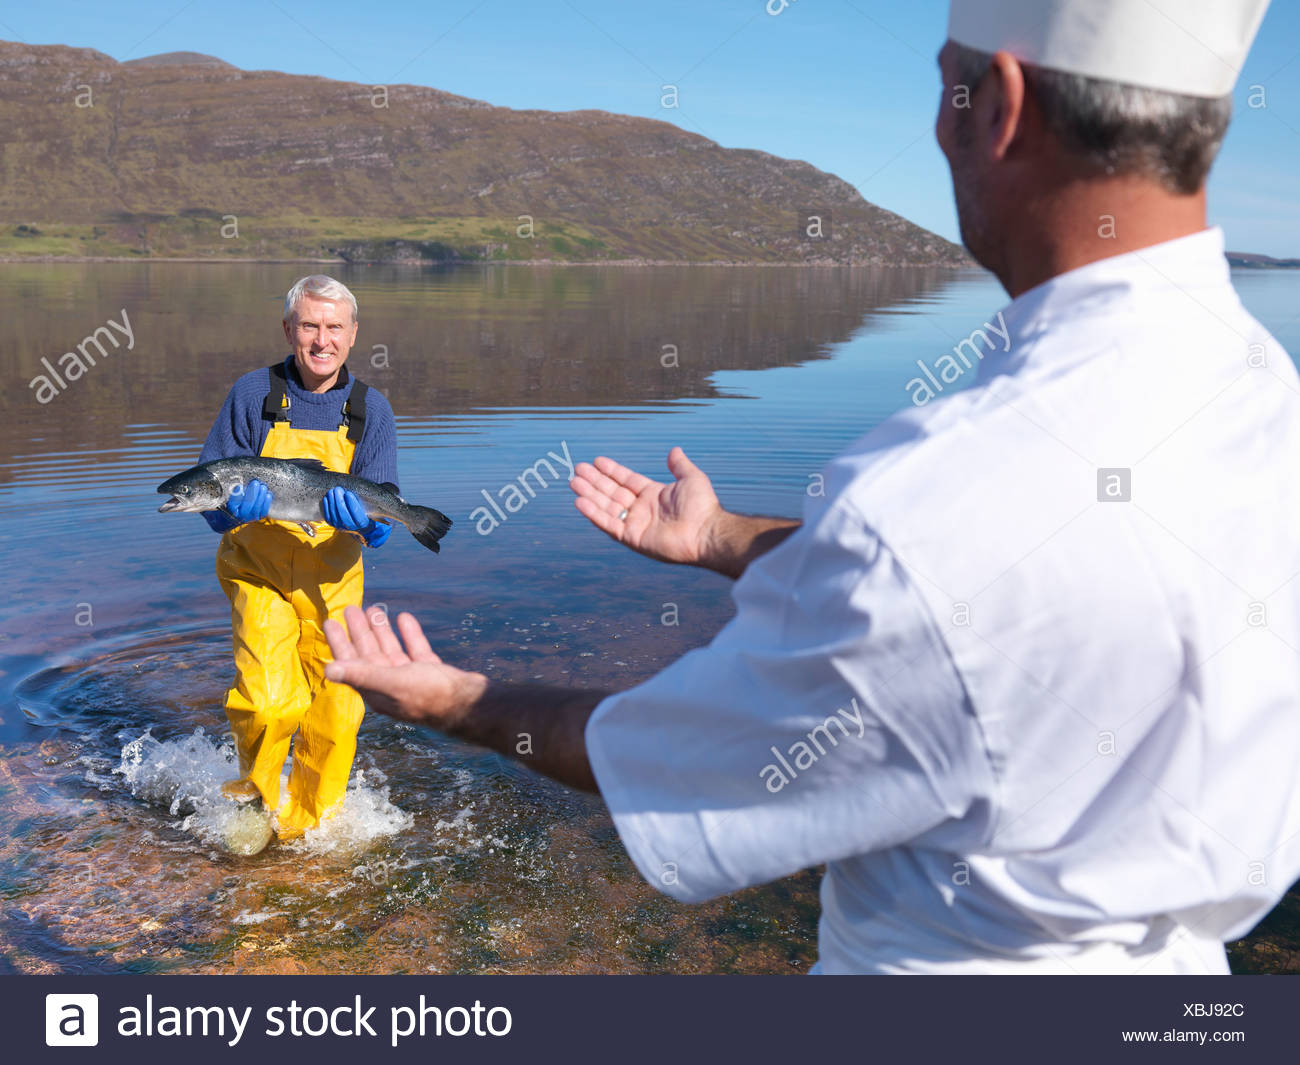 Fisherman and chef with salmon by lake - Stock Image